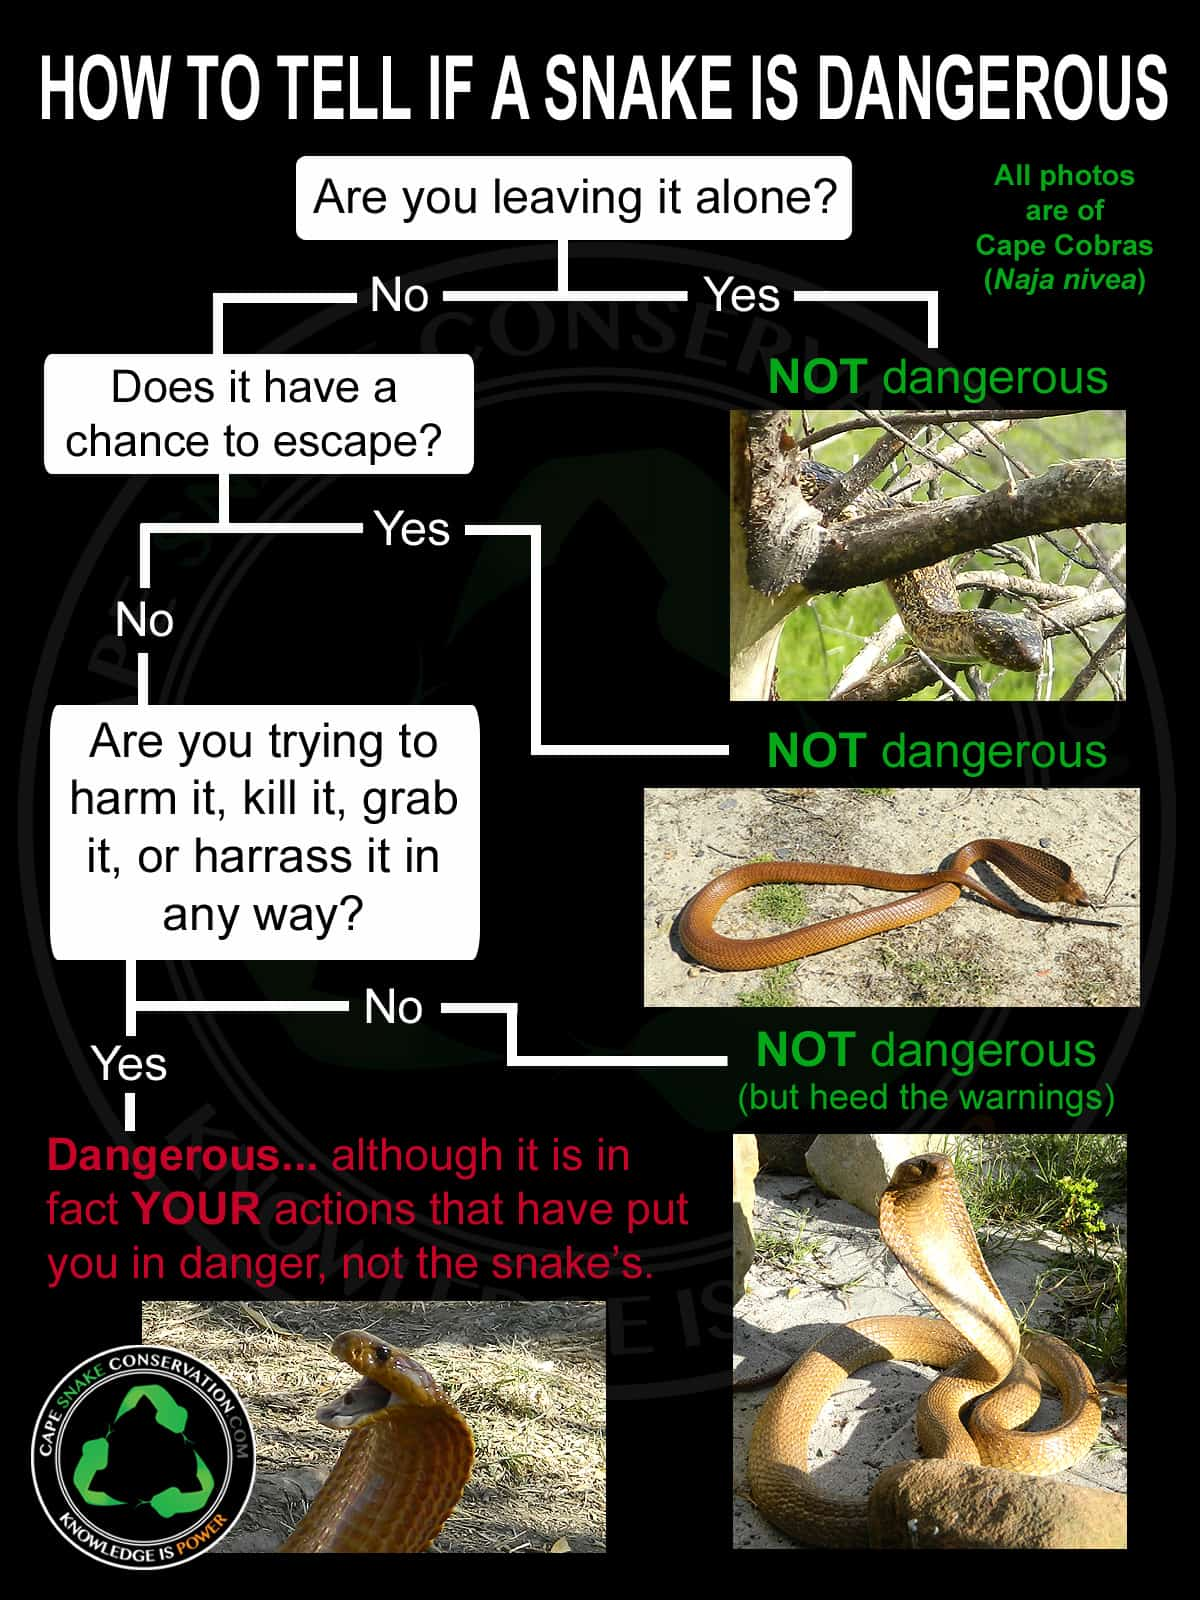 Infographic showing what to do if you see a snake